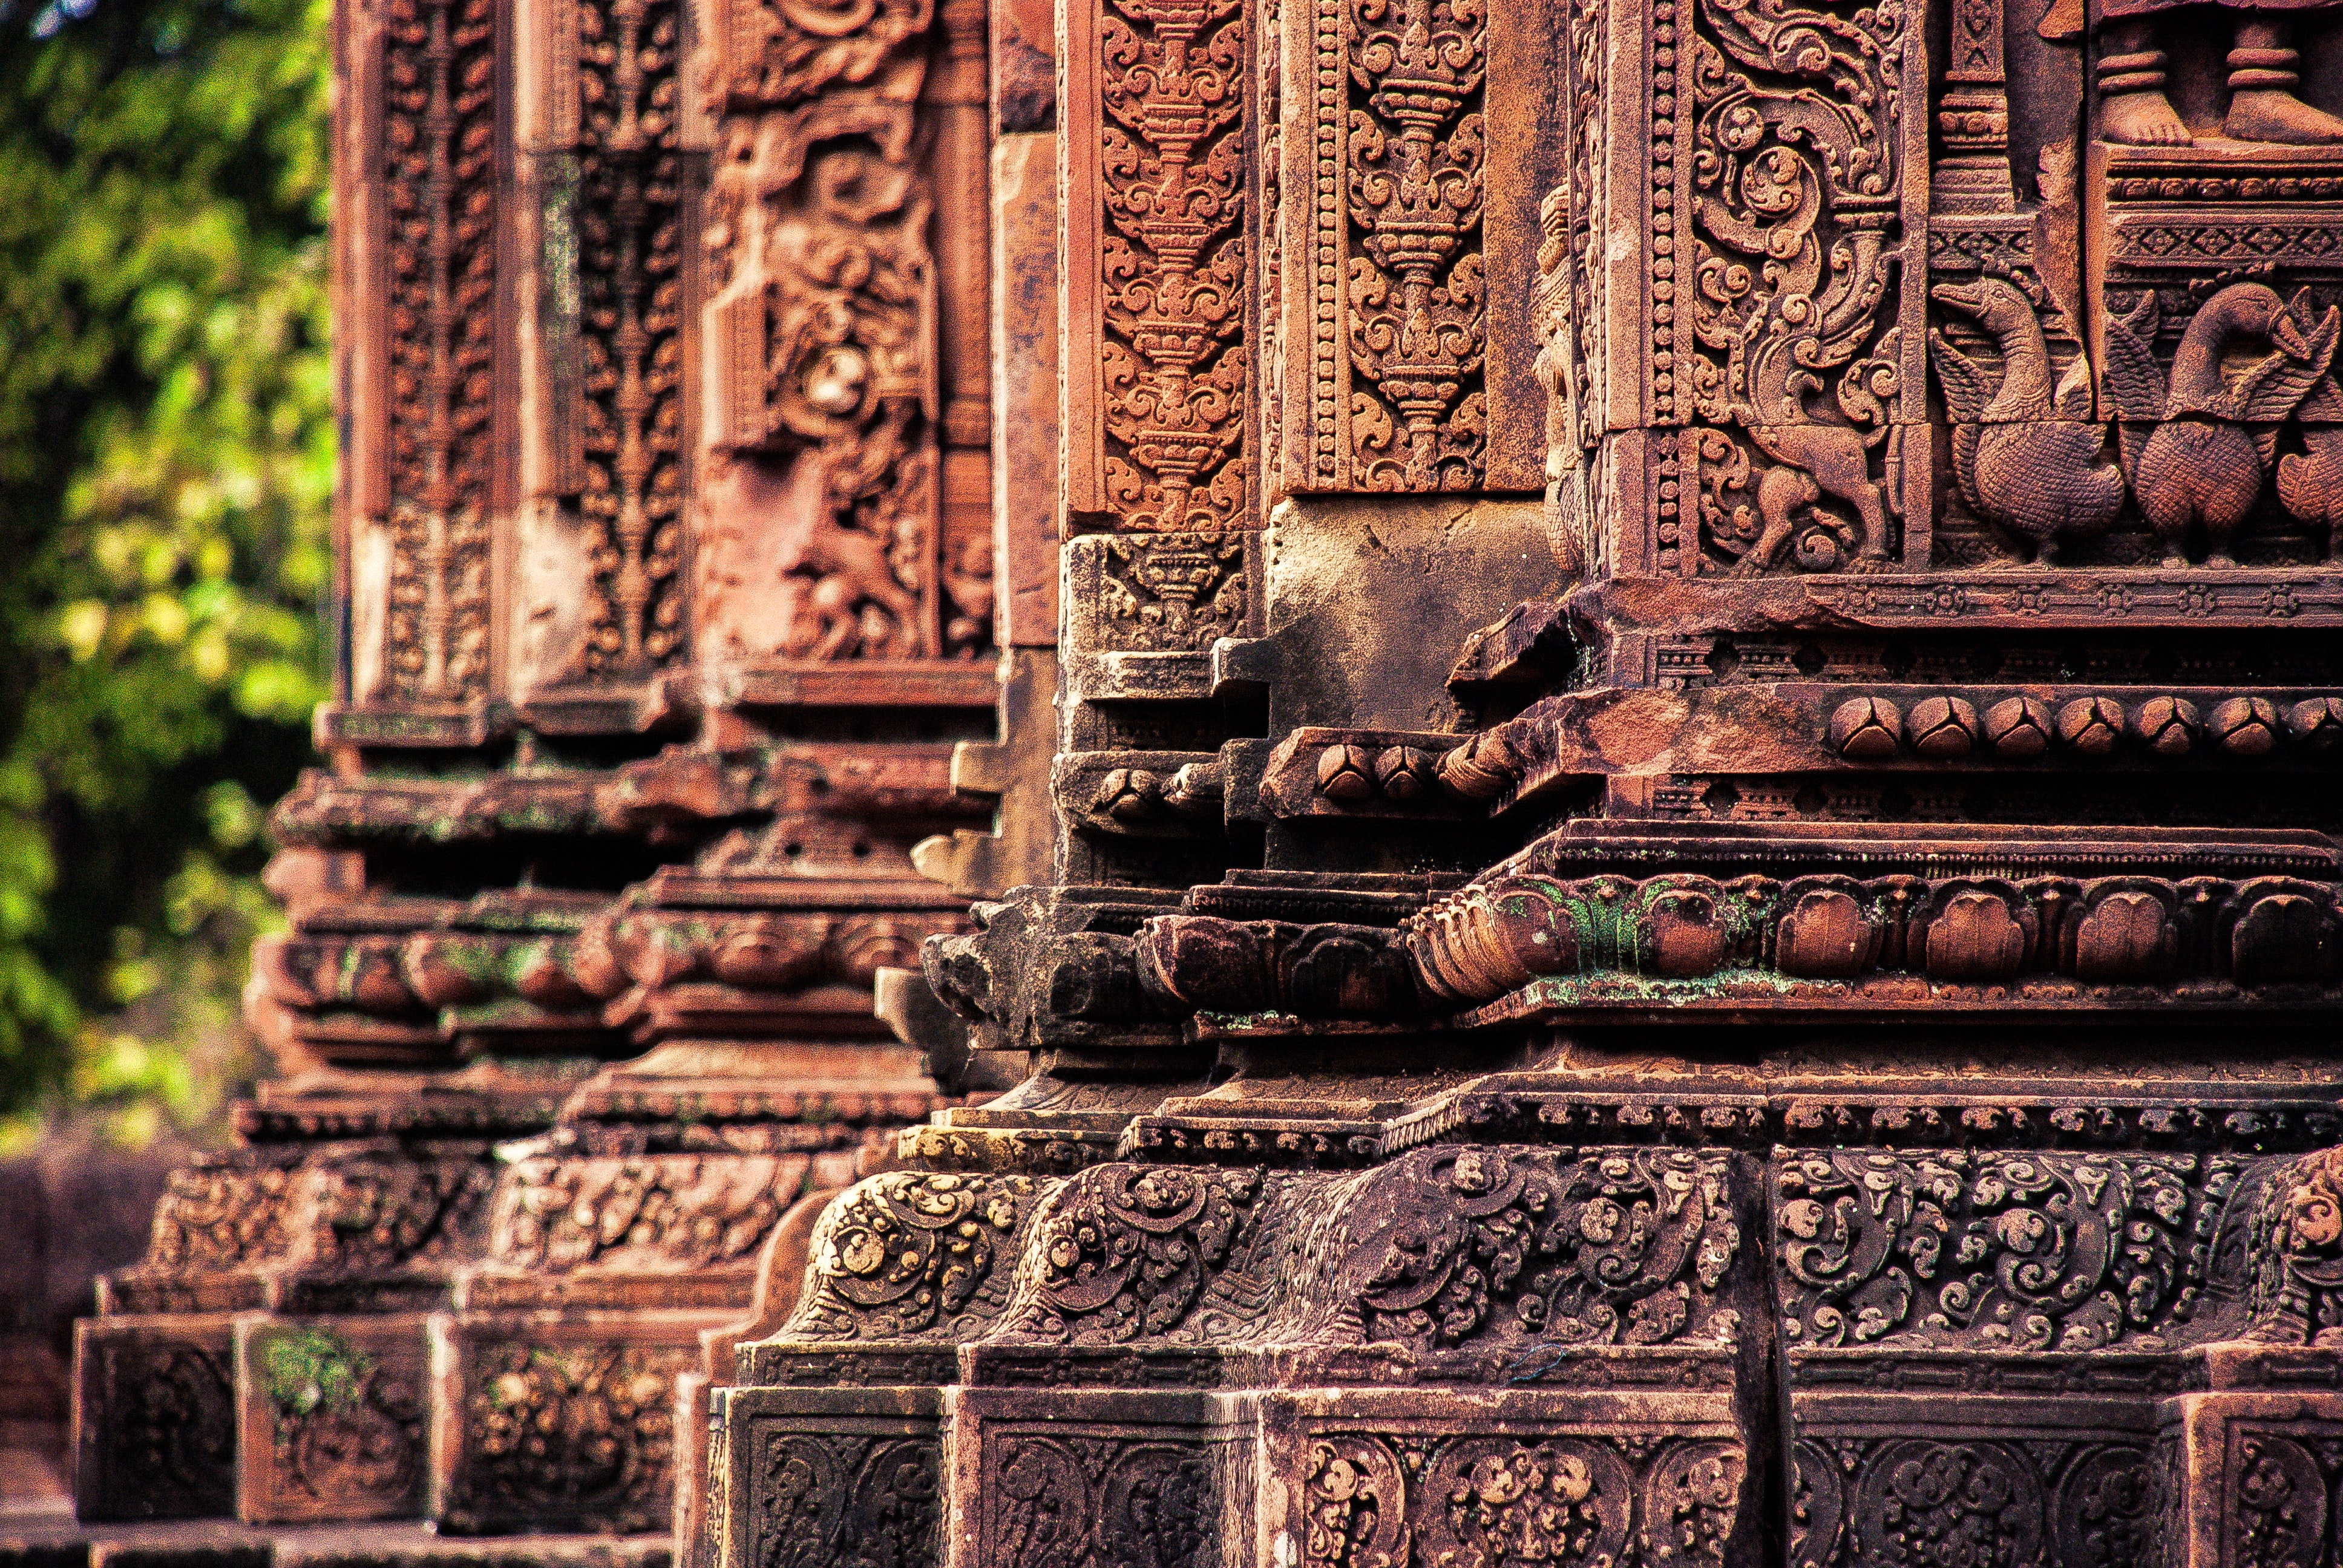 A temple that is etched with an intricate design in Banteay Srei